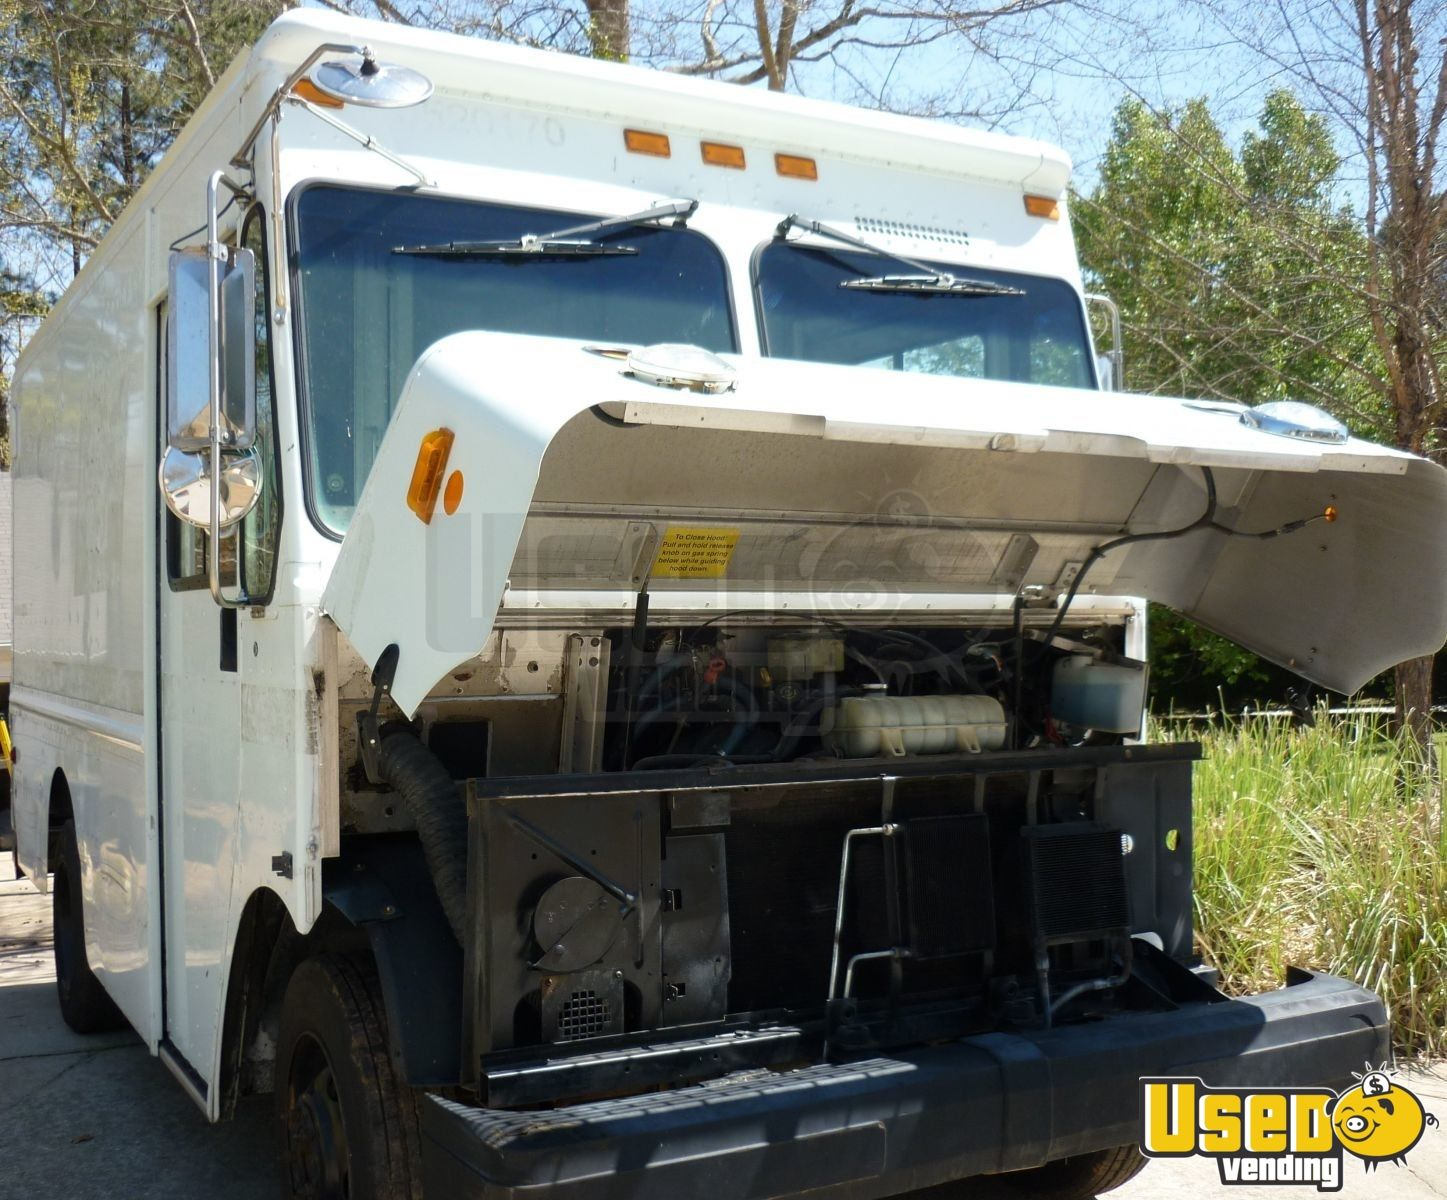 2003 Gruman P42 Workhorse Stepvan Stainless Steel Wall Covers Georgia Diesel Engine for Sale - 3